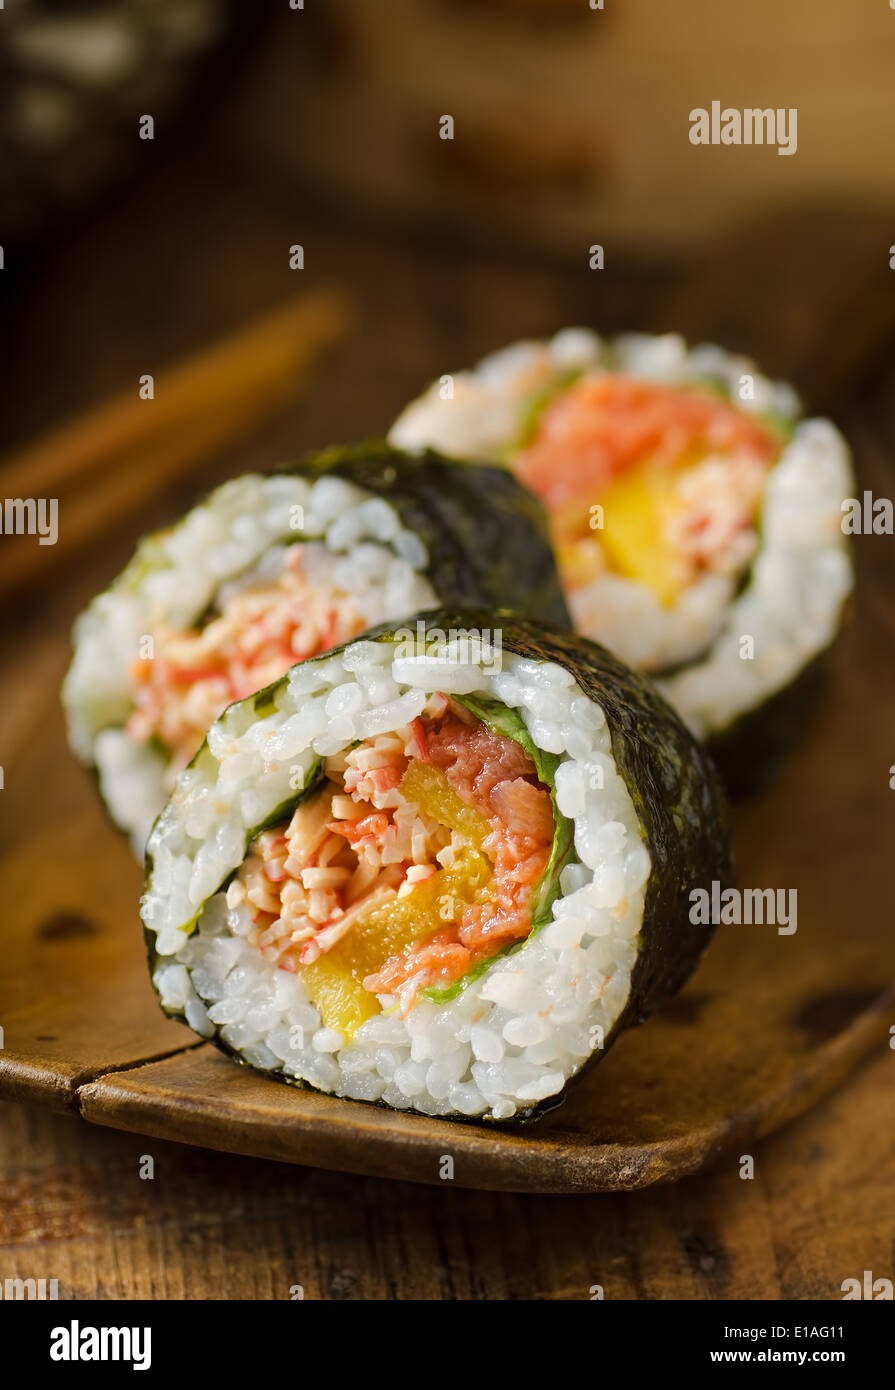 A Japanese sushi roll with smoked salmon and mango. - Stock Image